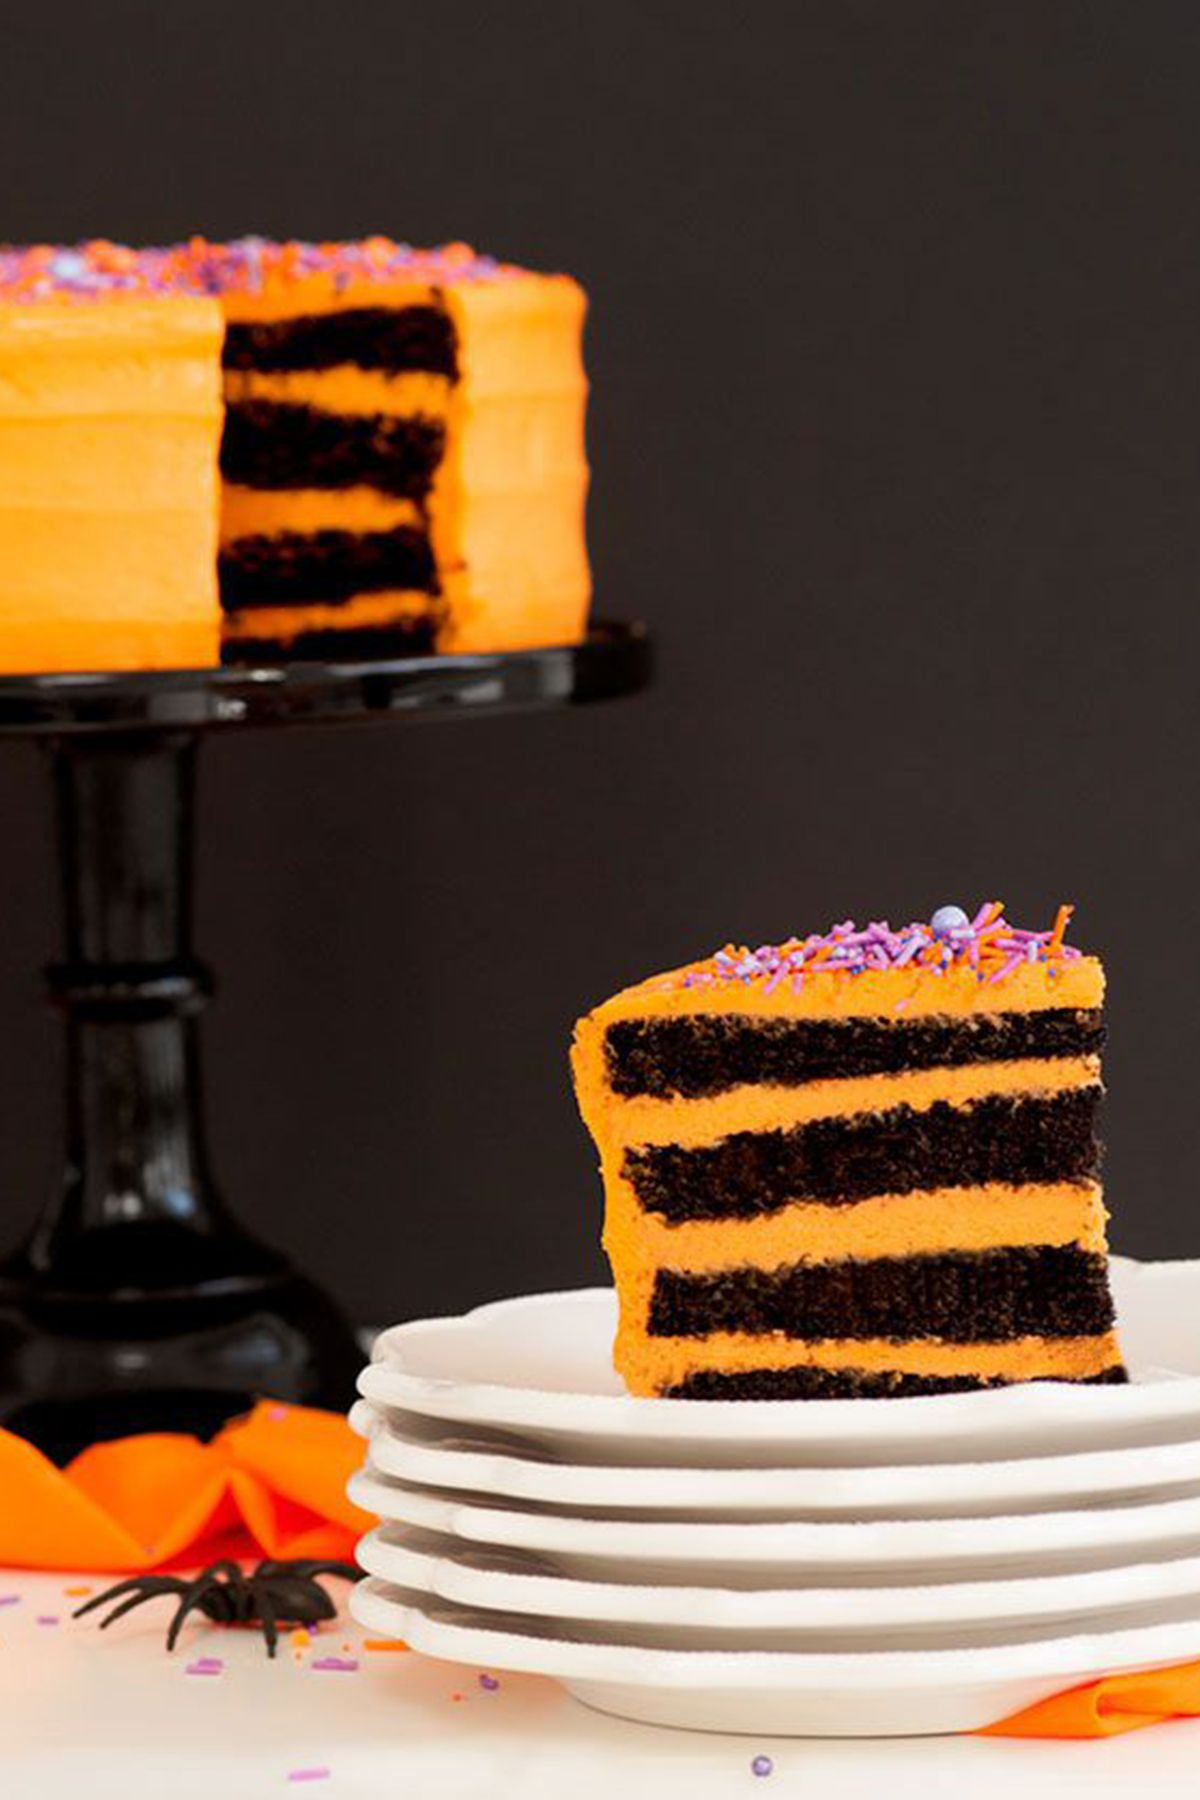 35 easy halloween cakes recipes ideas for halloween cake decorating